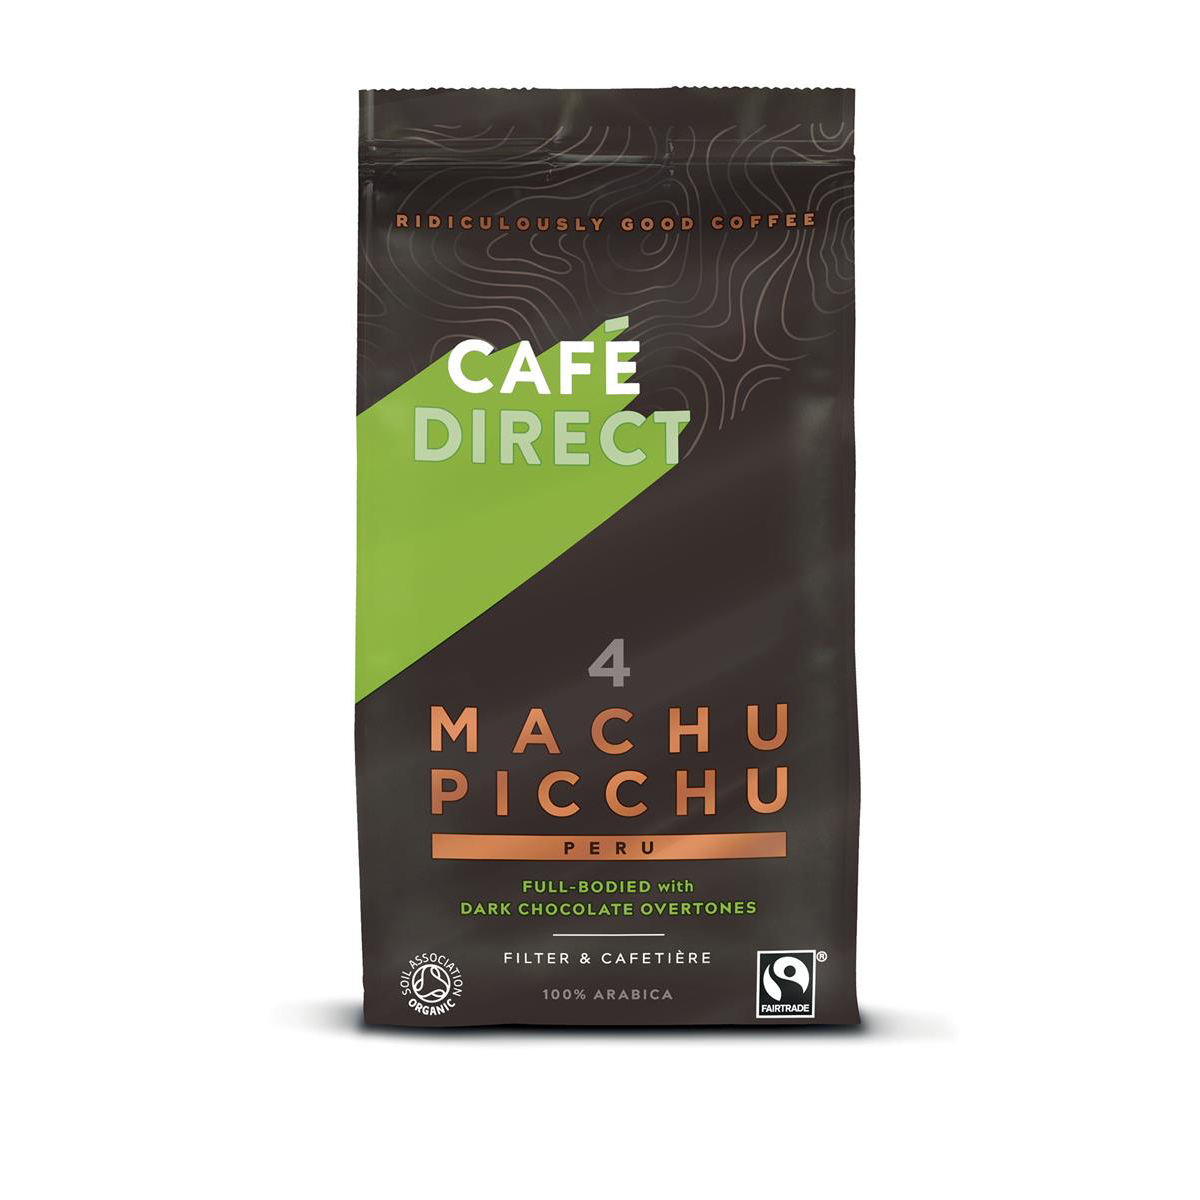 Coffee Cafe Direct Machu Picchu Peru Fairtrade Roast and Ground Coffee 227g Ref FCR1001